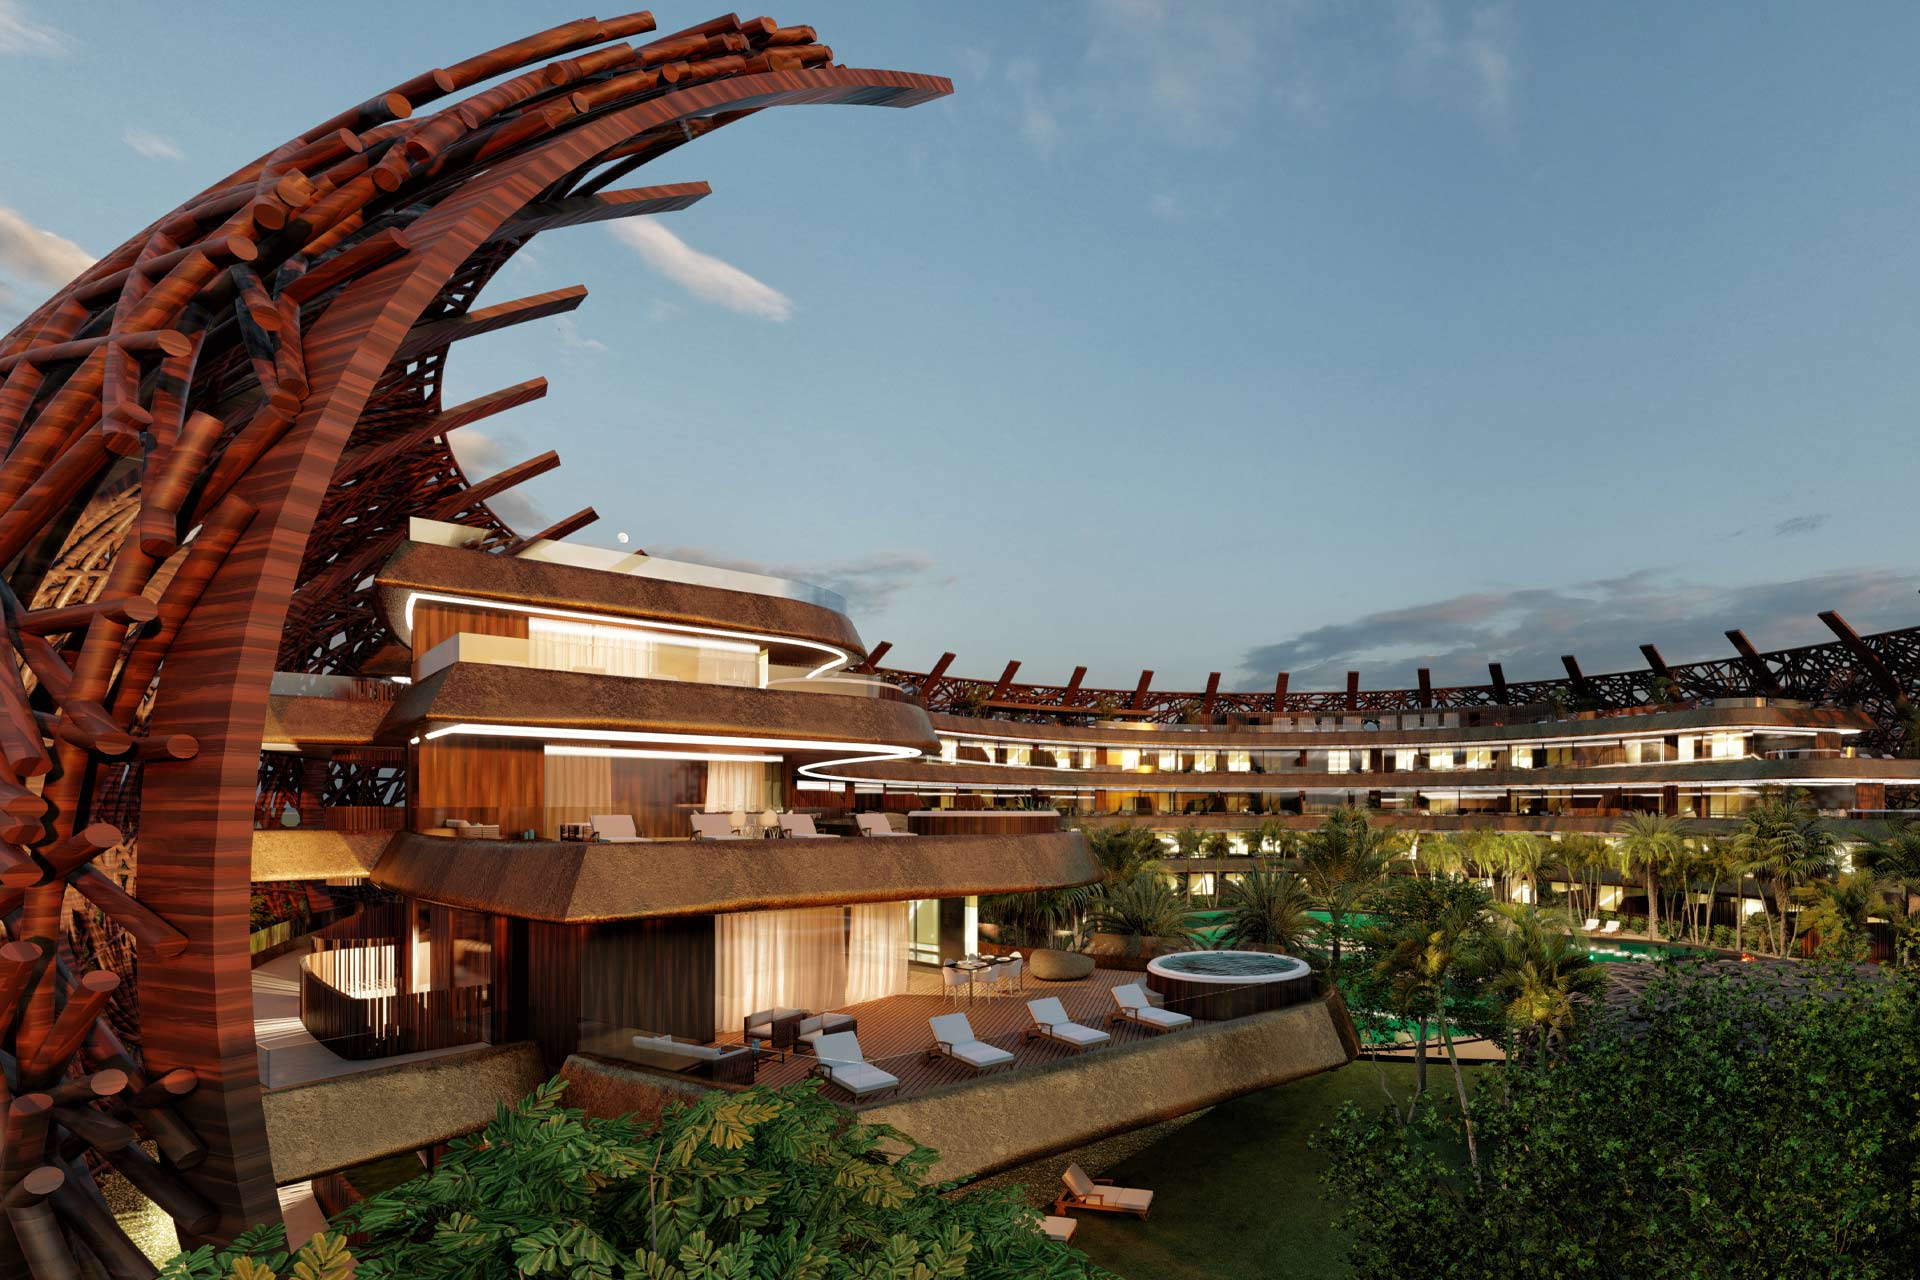 A rendering of Cocoon Hotel & Resort in Tulum, Mexico